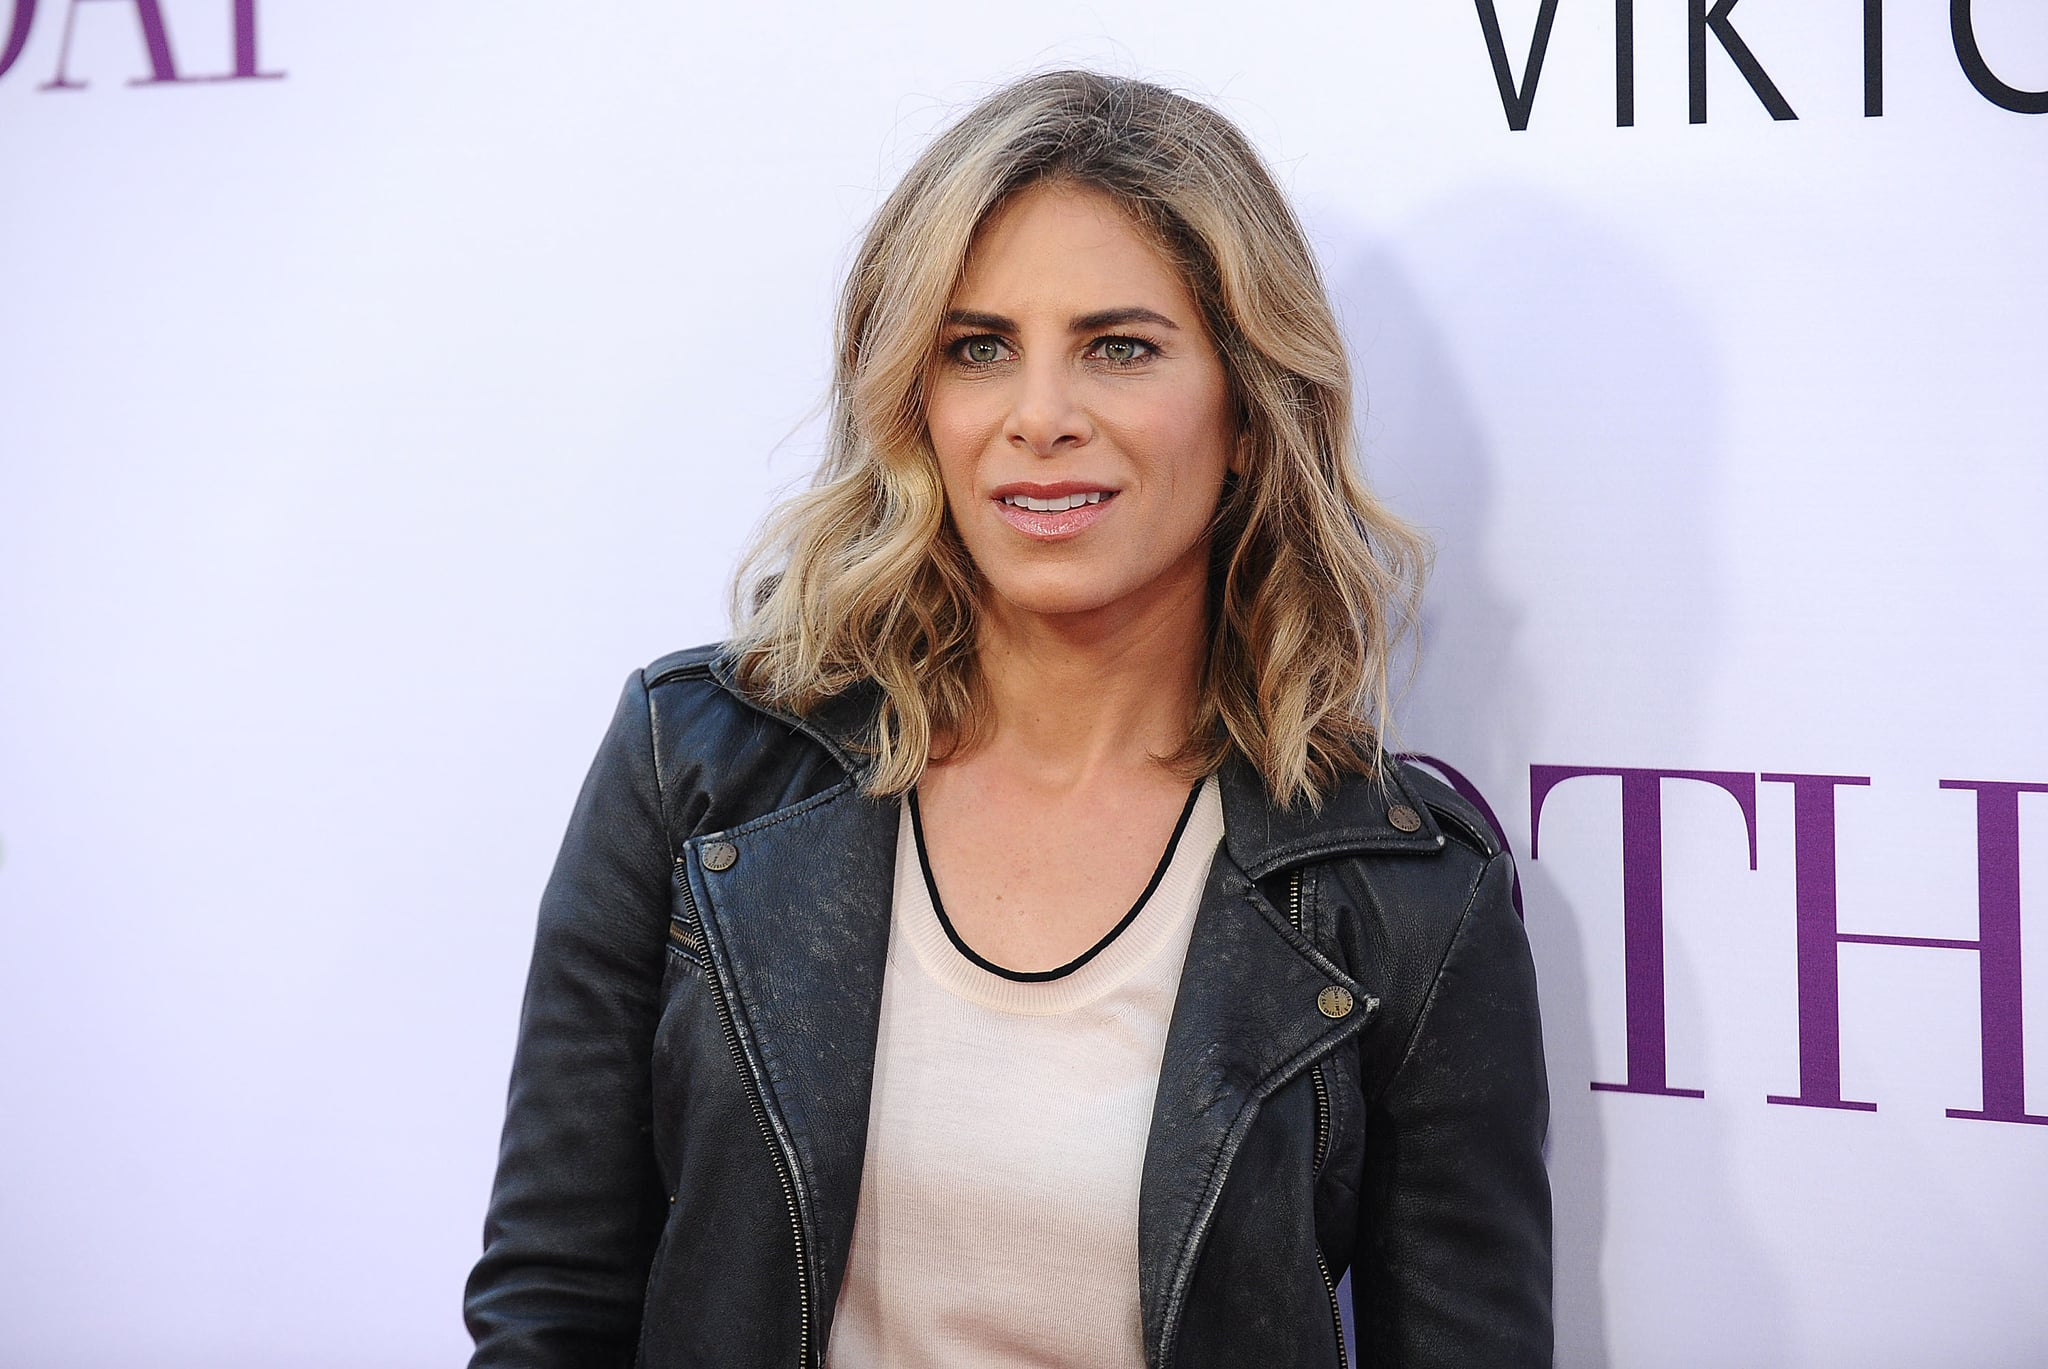 HOLLYWOOD, CA - APRIL 13: Jillian Michaels attends the premiere of